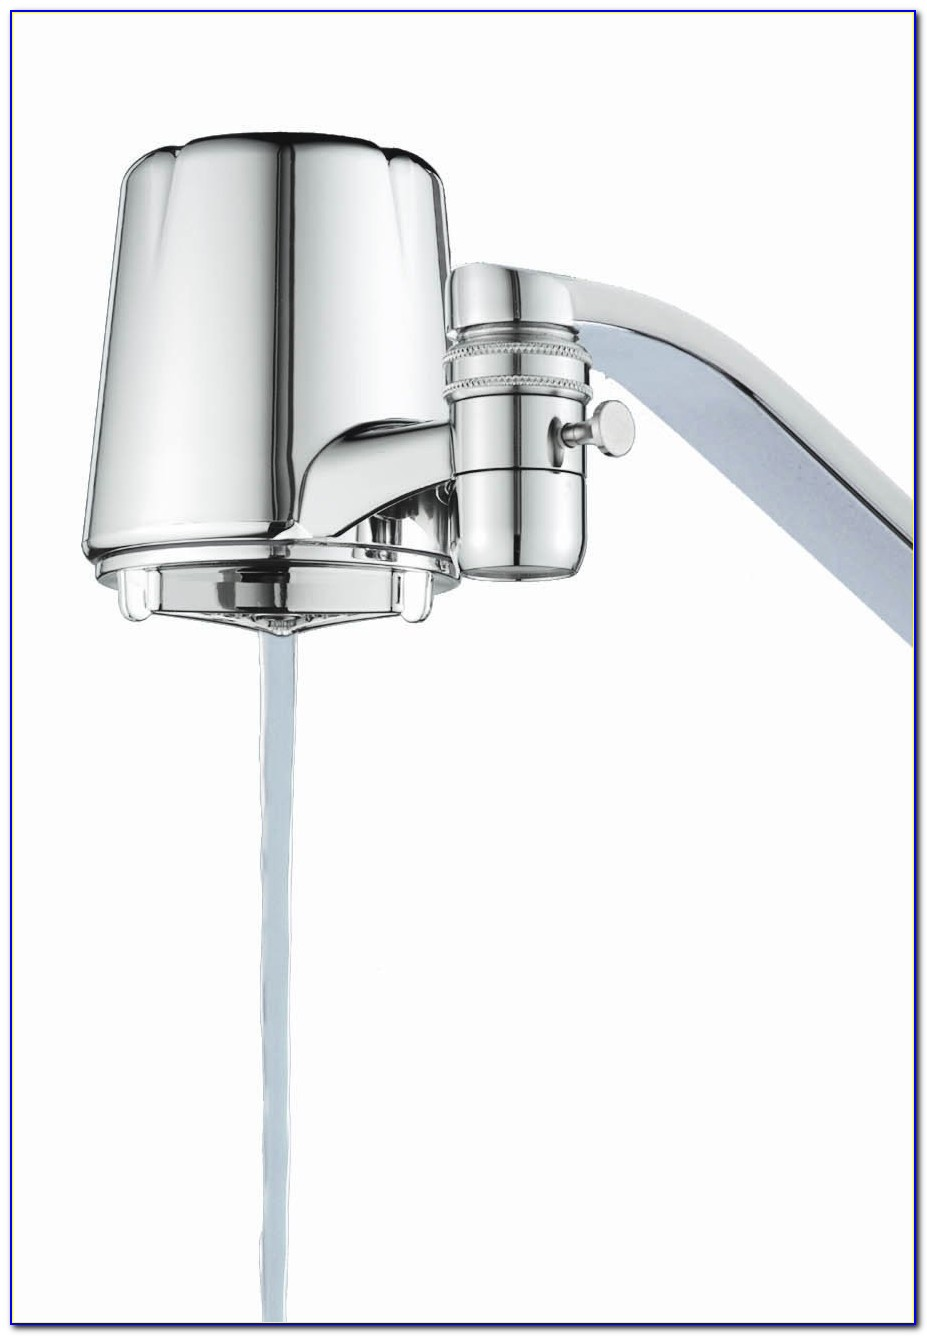 Water Filter Reverse Osmosis Faucet Chrome Tip